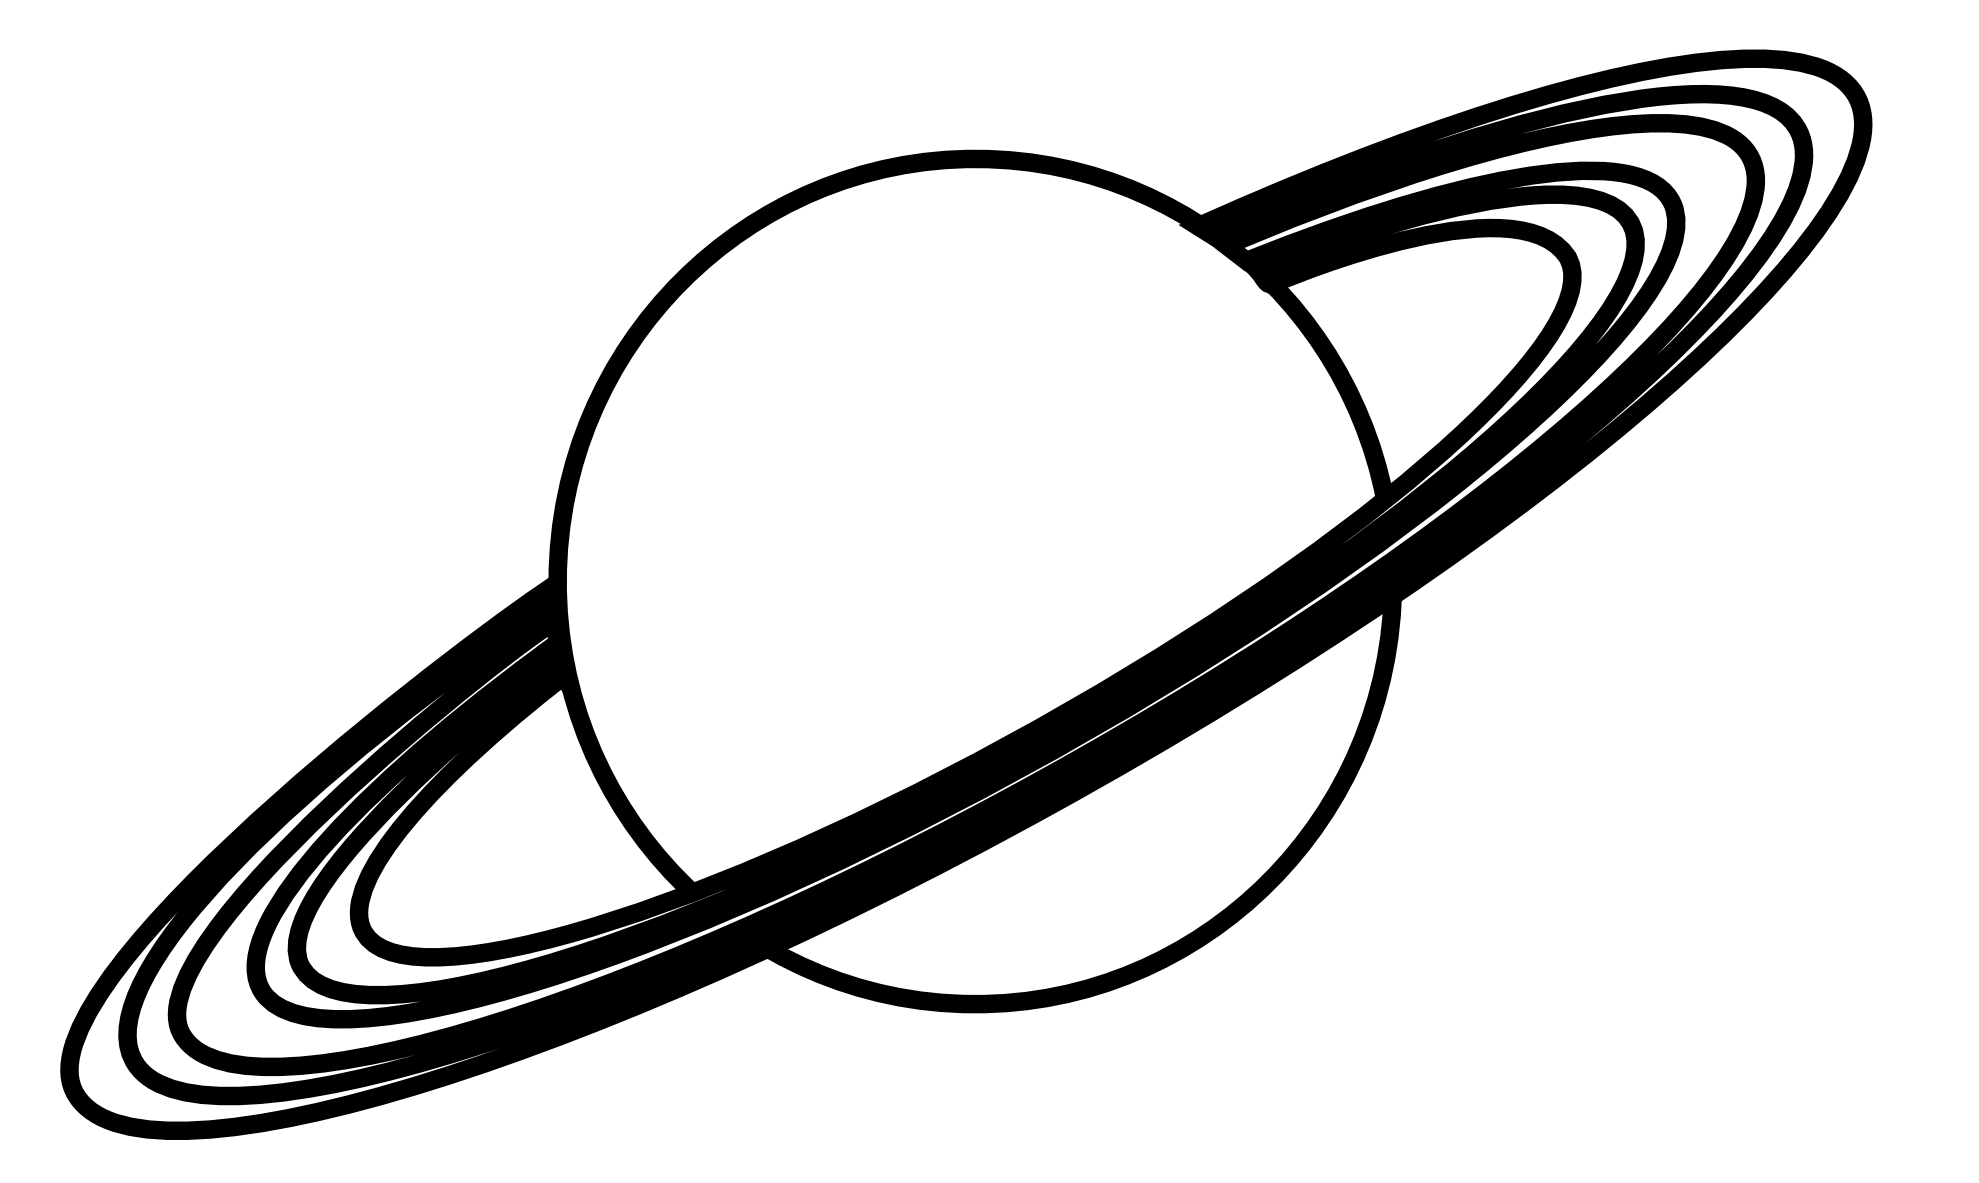 Line Art Name : Planet with names clipart suggest